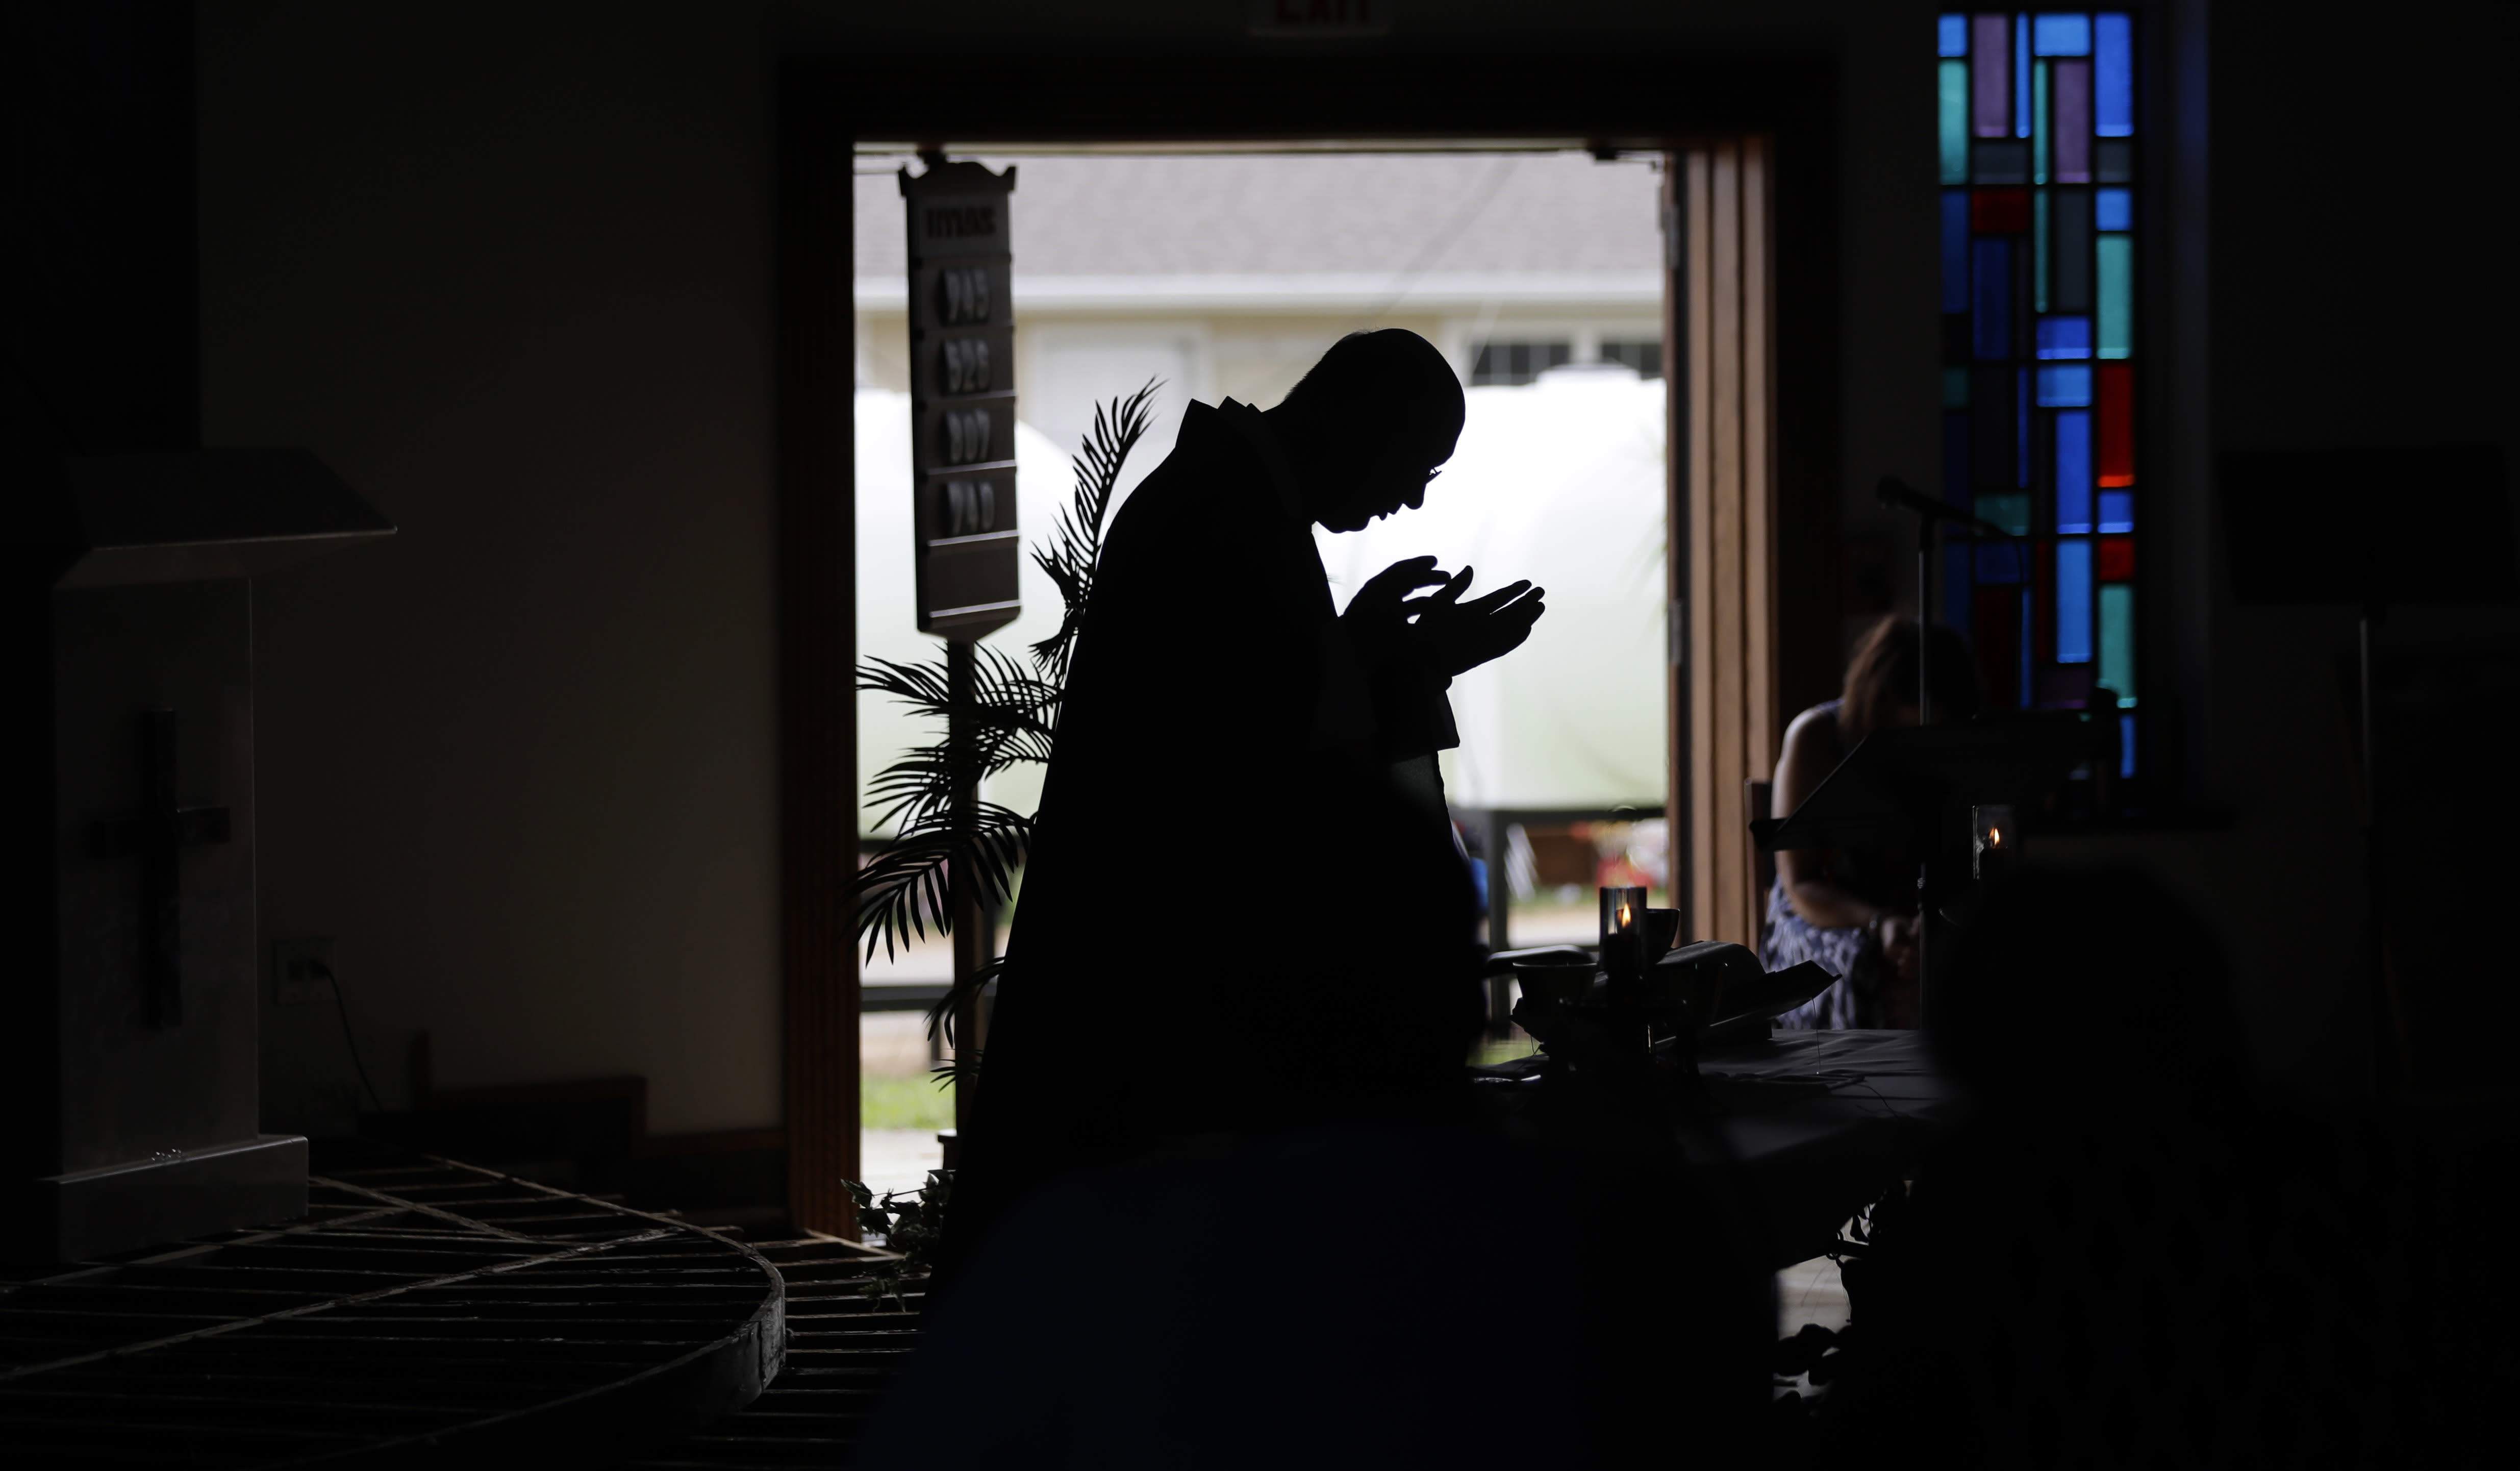 <p>Father Kris Bauta celebrates Mass at St. Joseph Catholic Church which was damaged from the effects of Hurricane Harvey, Sunday, Sept. 3, 2017, in Port Aransas, Texas. The church and Port Aransas is still with out electricity. (Photo: Eric Gay/AP) </p>